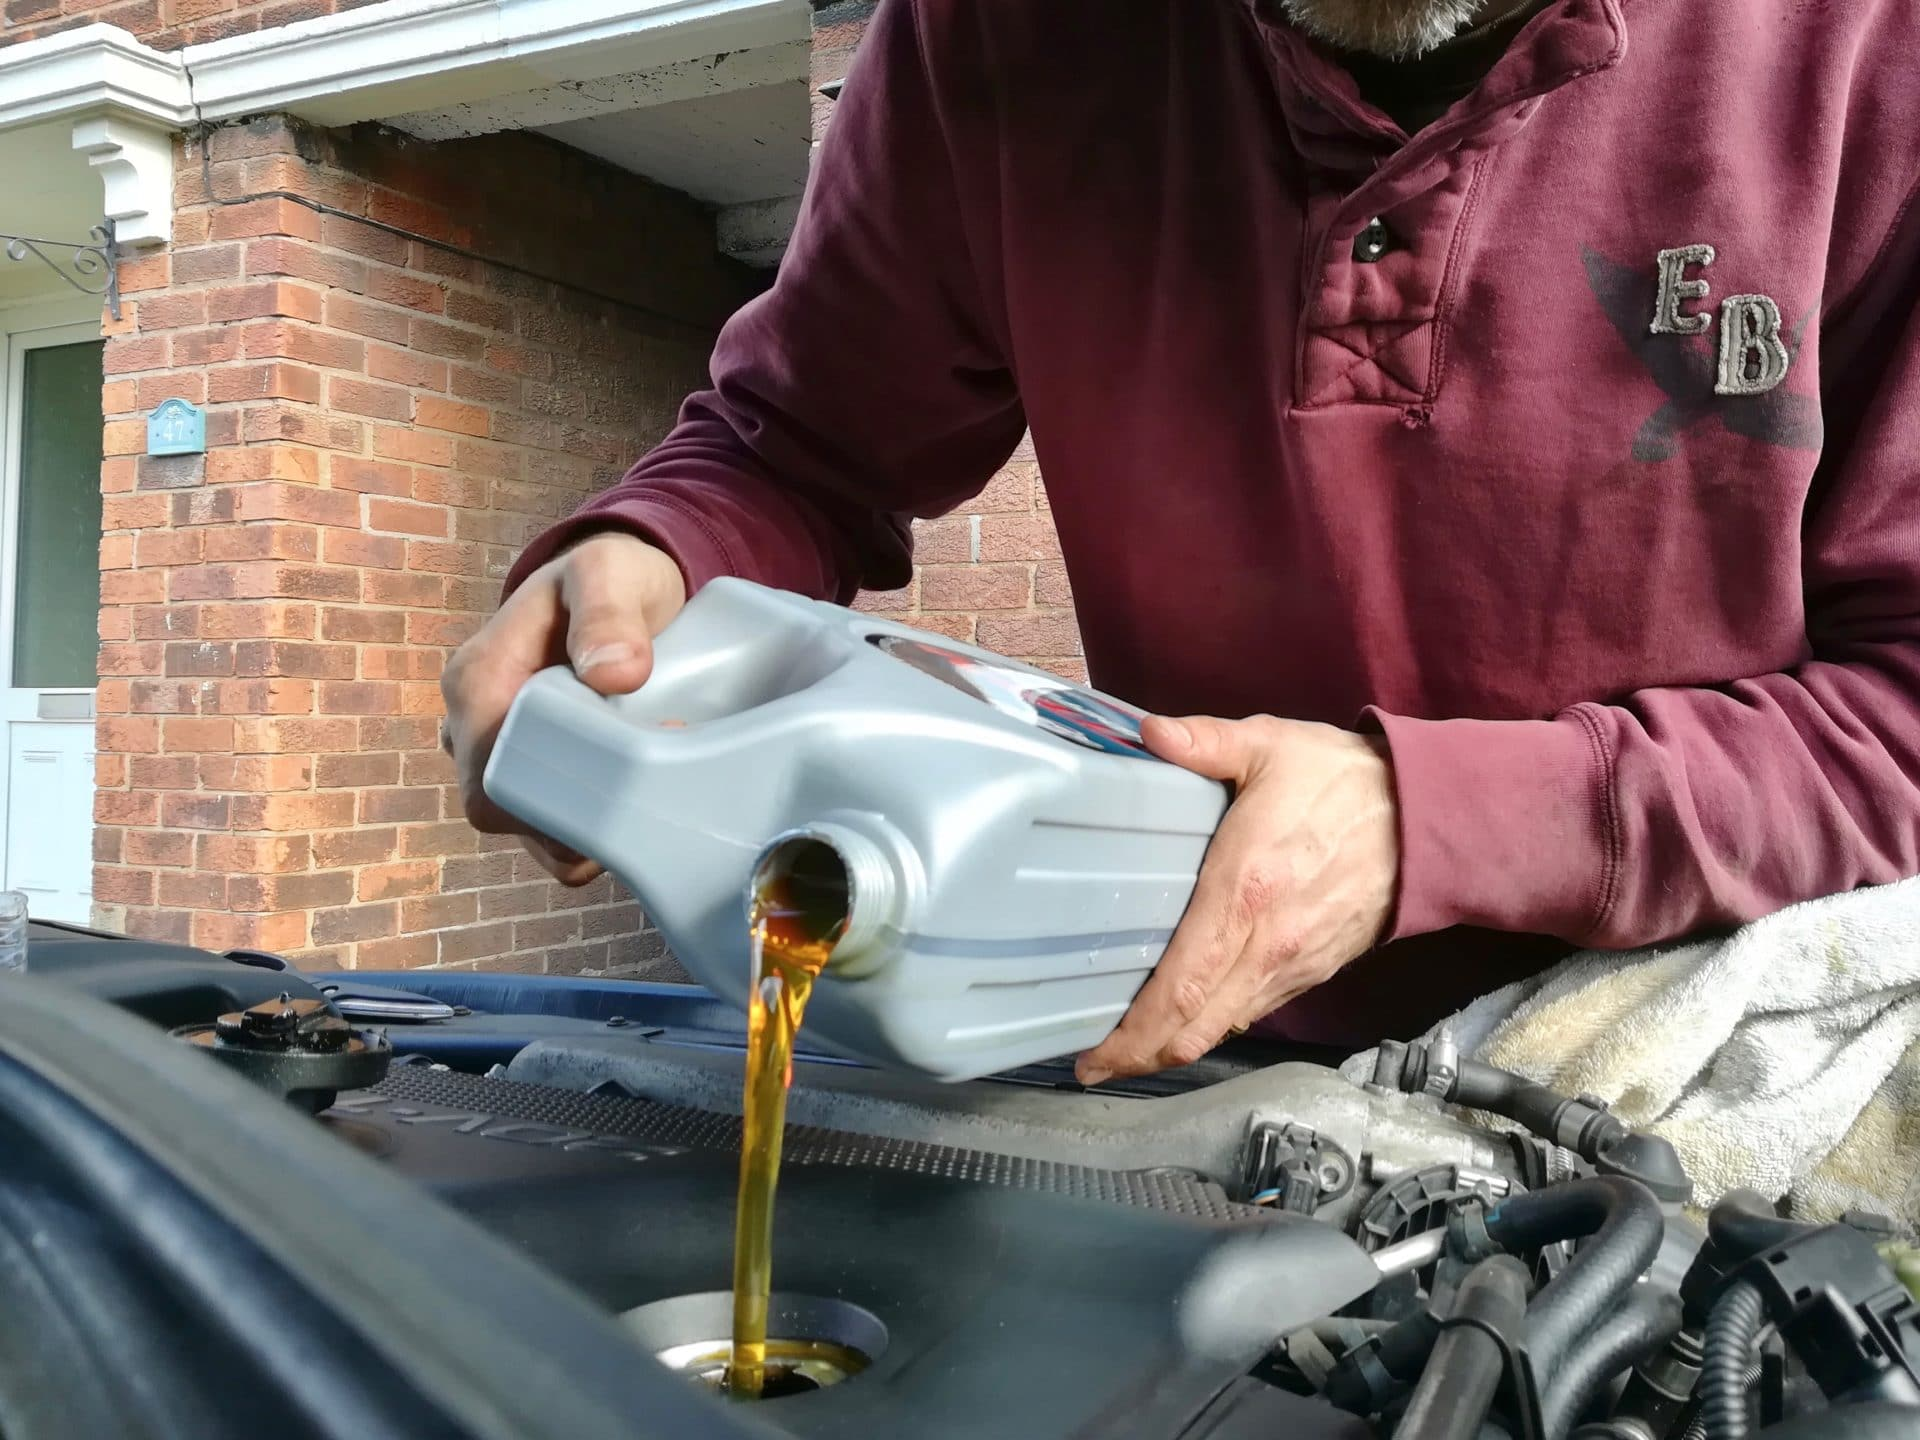 engine, engine fluids, engine oil, engine maintenance, classic car, retro car, motoring, automotive, hom mechanic, car repair, not2grand, not2grand.co.uk,